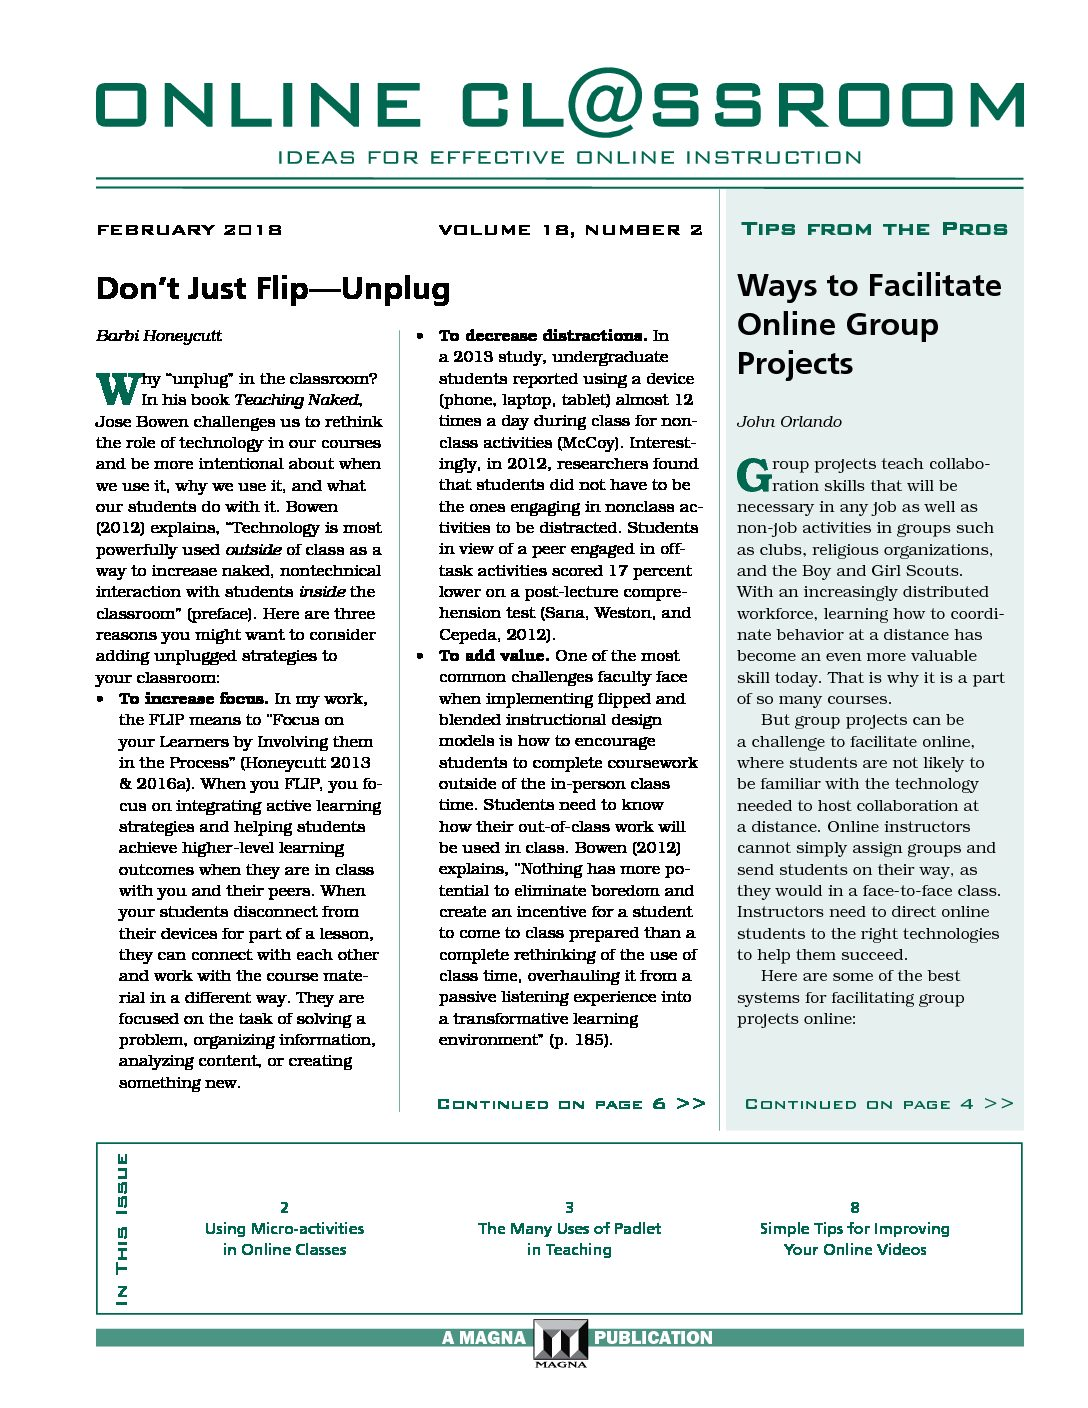 Ways To Facilitate Online Group Projects  Professional Development